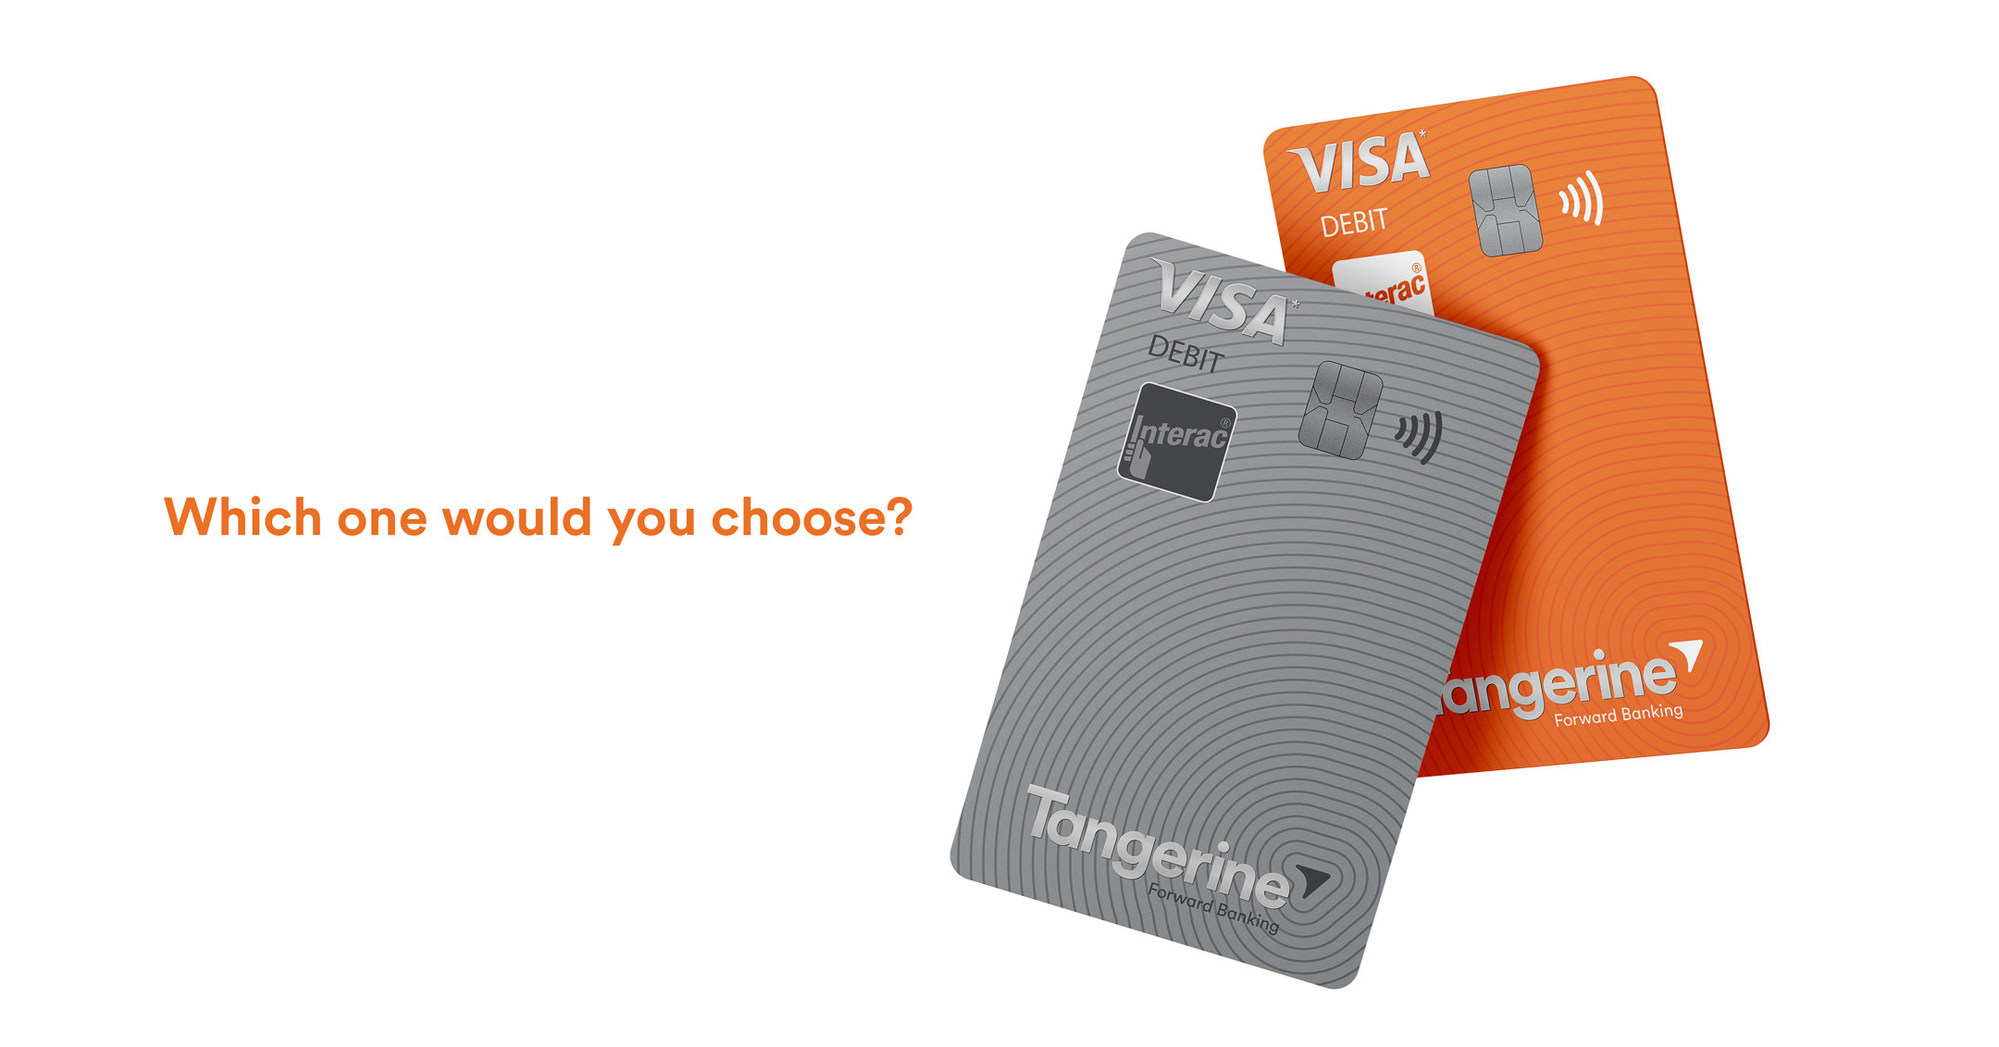 Tangerine Bank and Visa Canada Team Up to Introduce New Visa